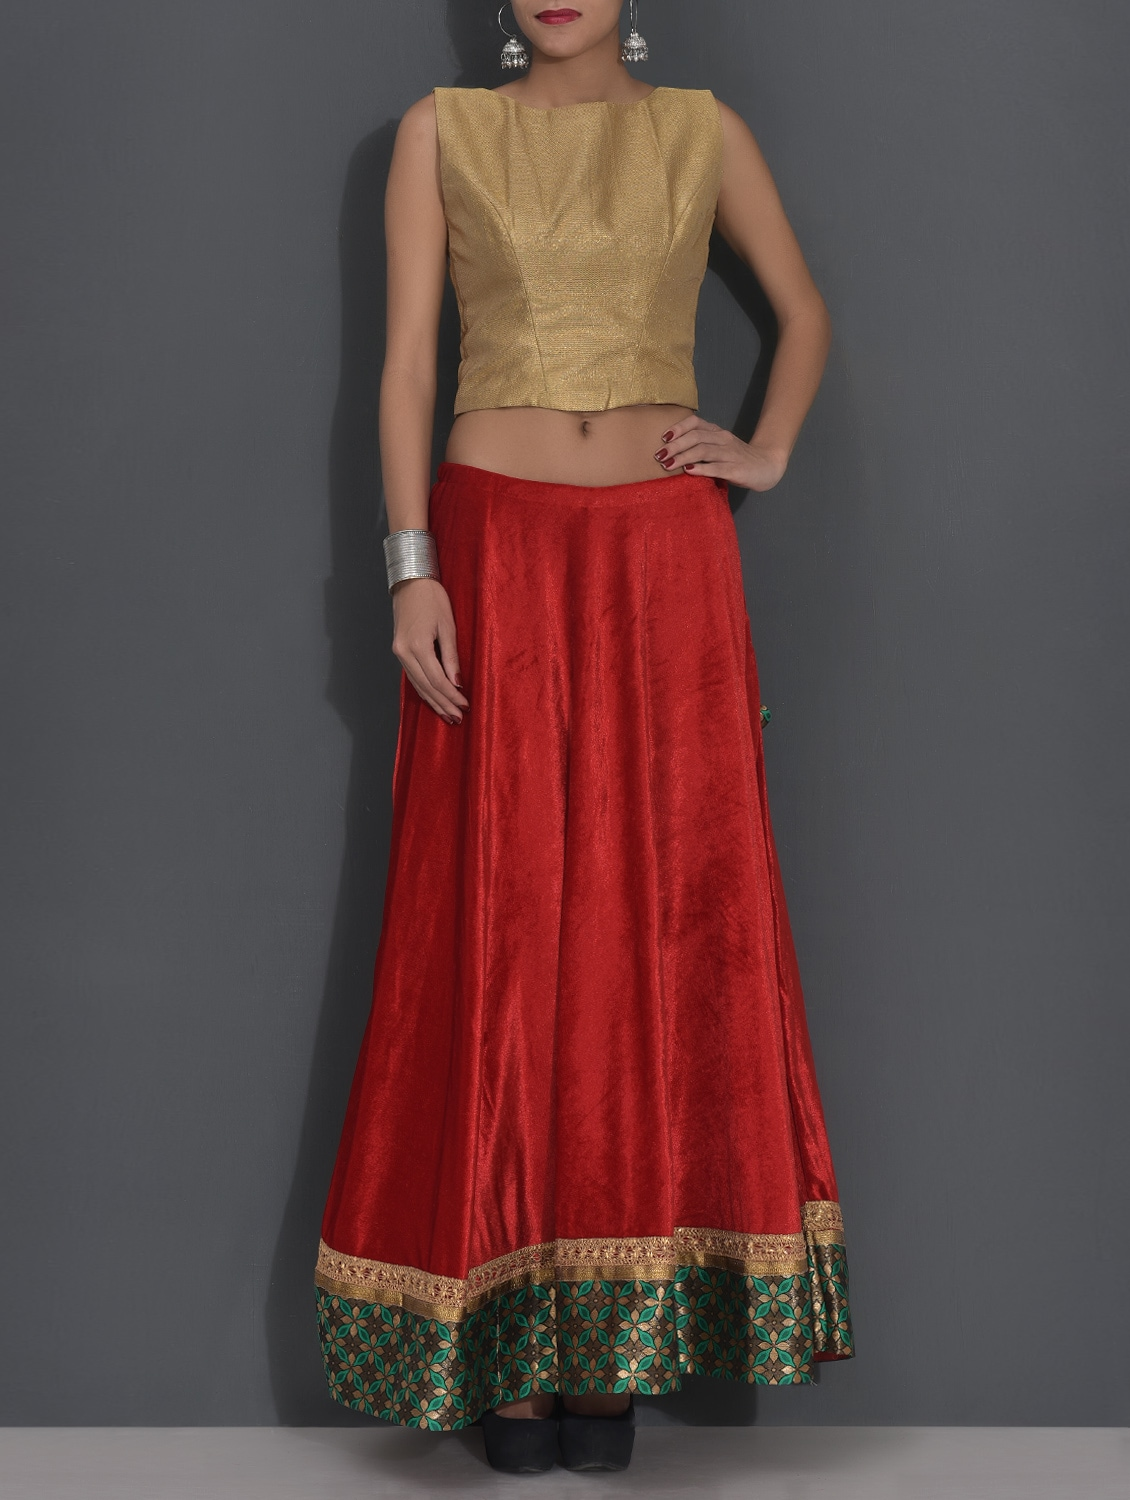 32e515daa4342 Red And Gold Semi Brocade Crop Top Skirt Set By Kaanchie Nanggia